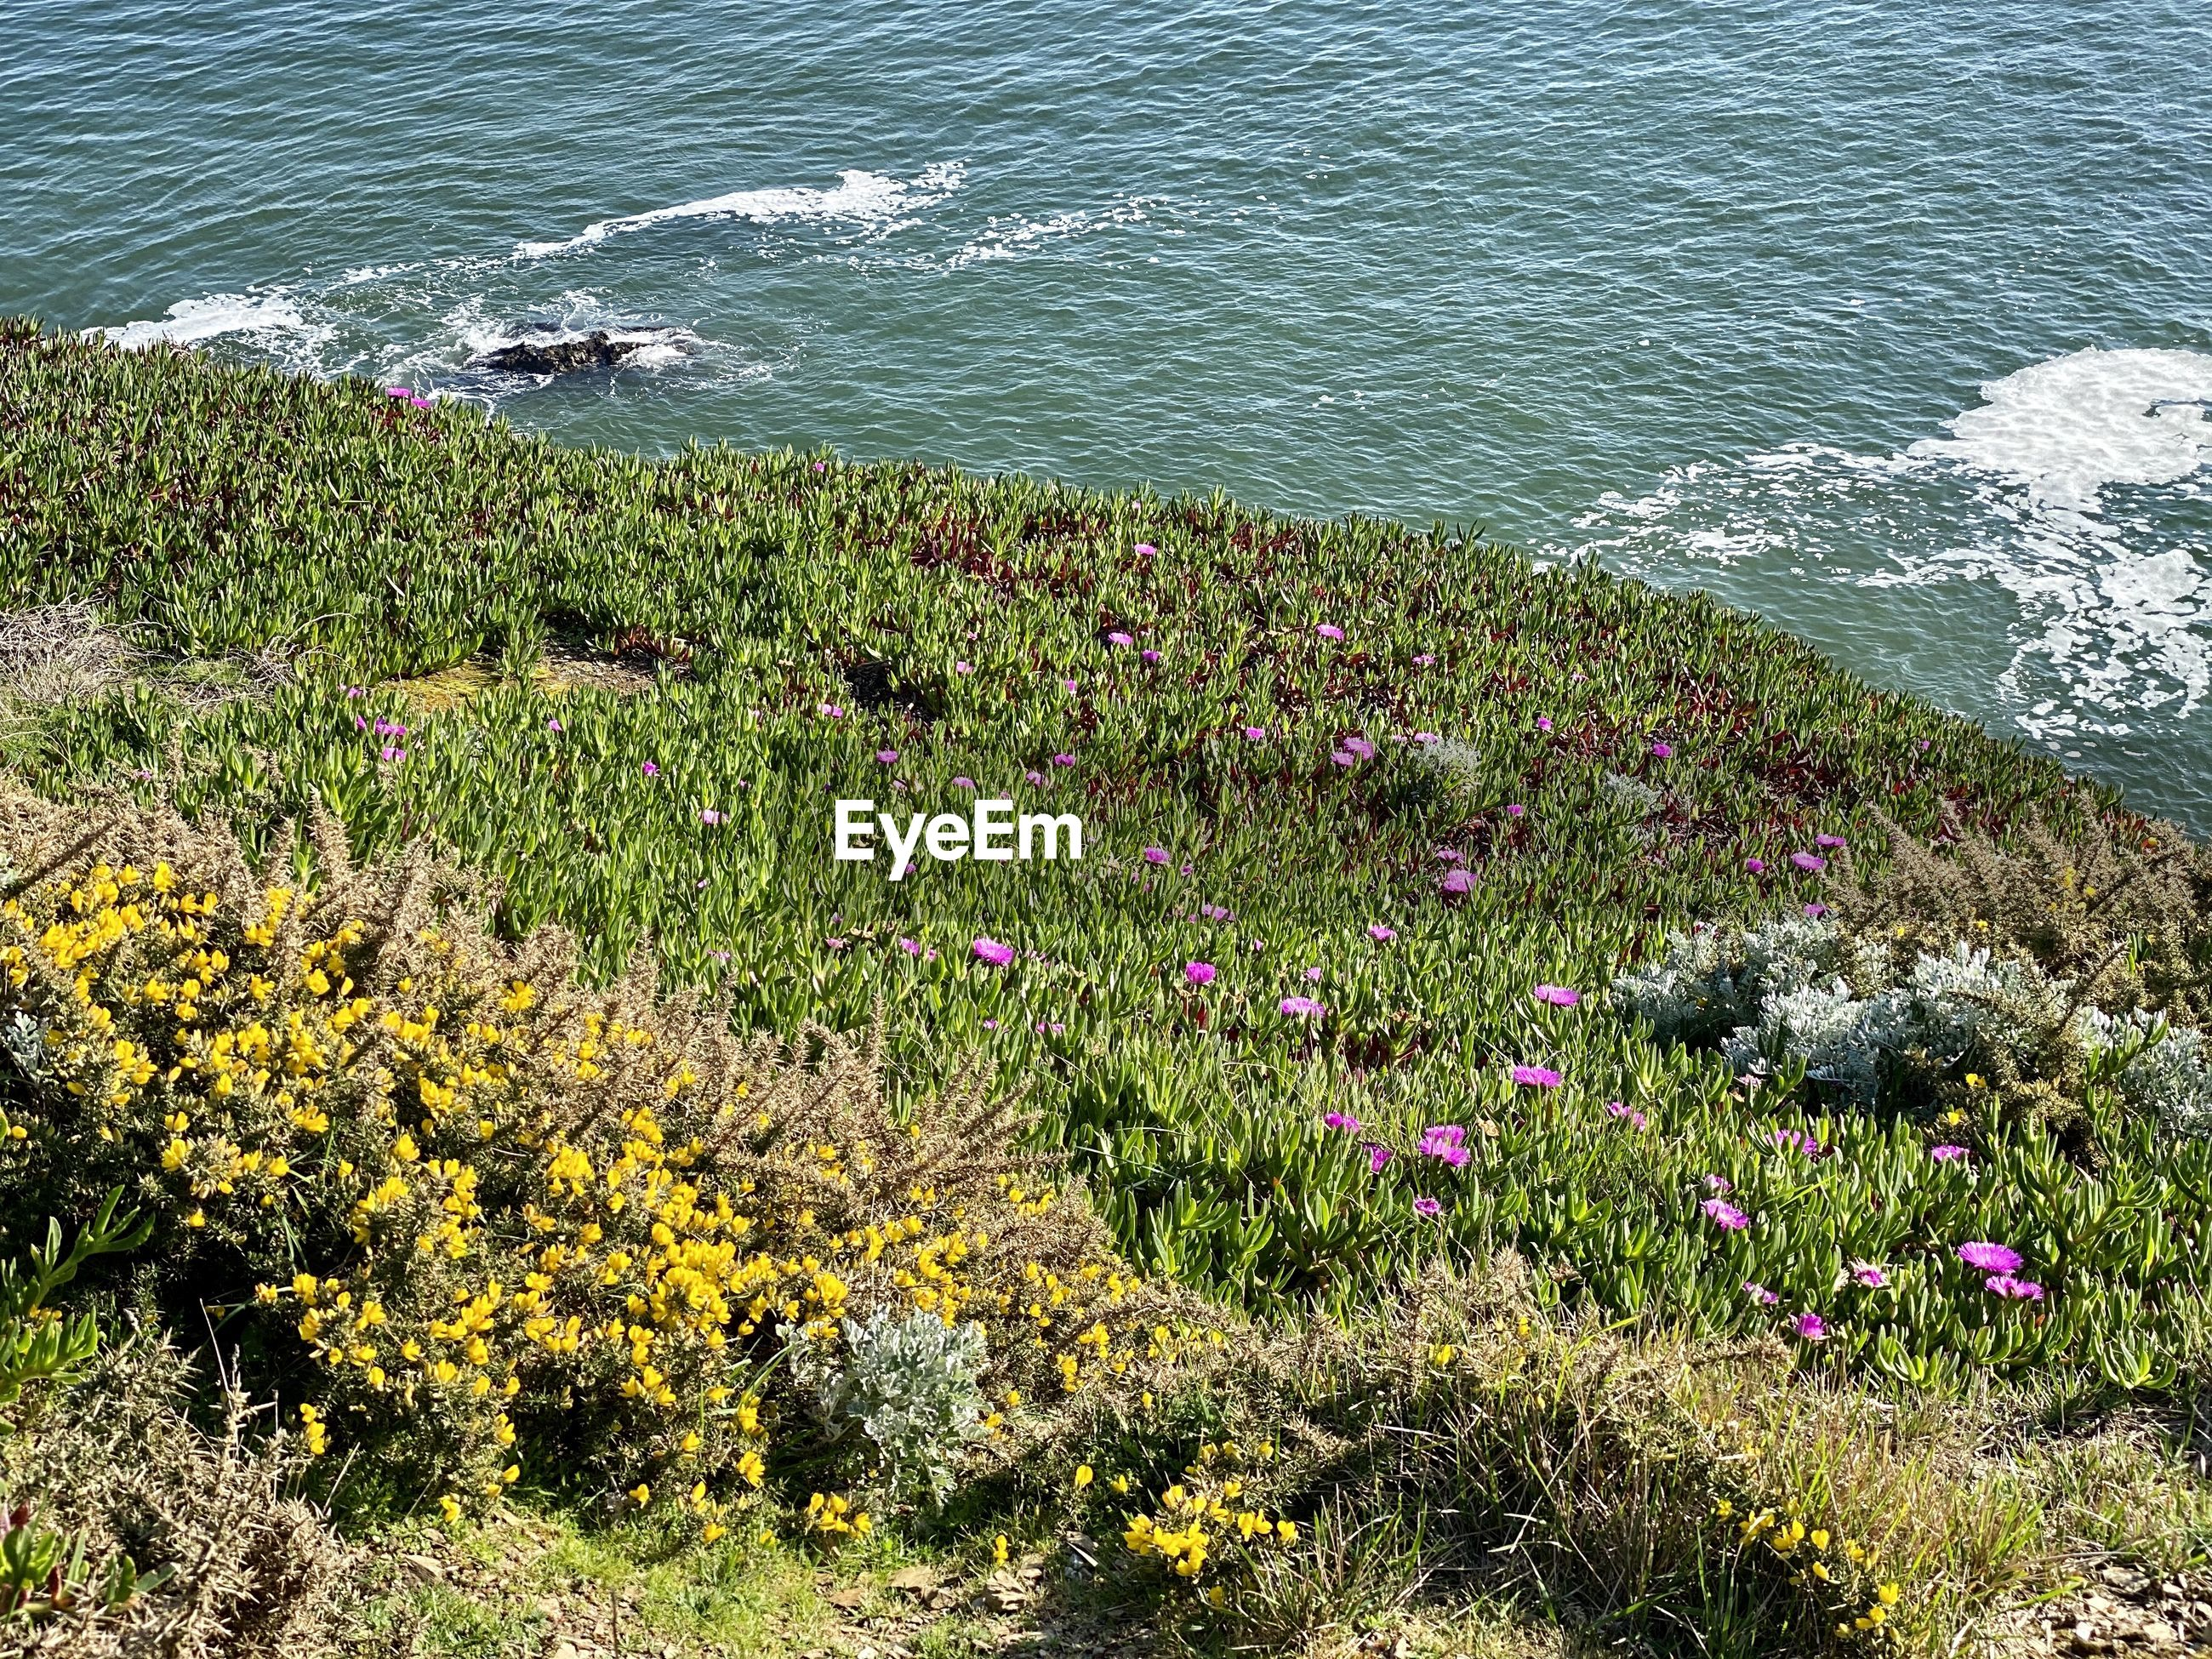 HIGH ANGLE VIEW OF FLOWERING PLANTS AT SEA SHORE